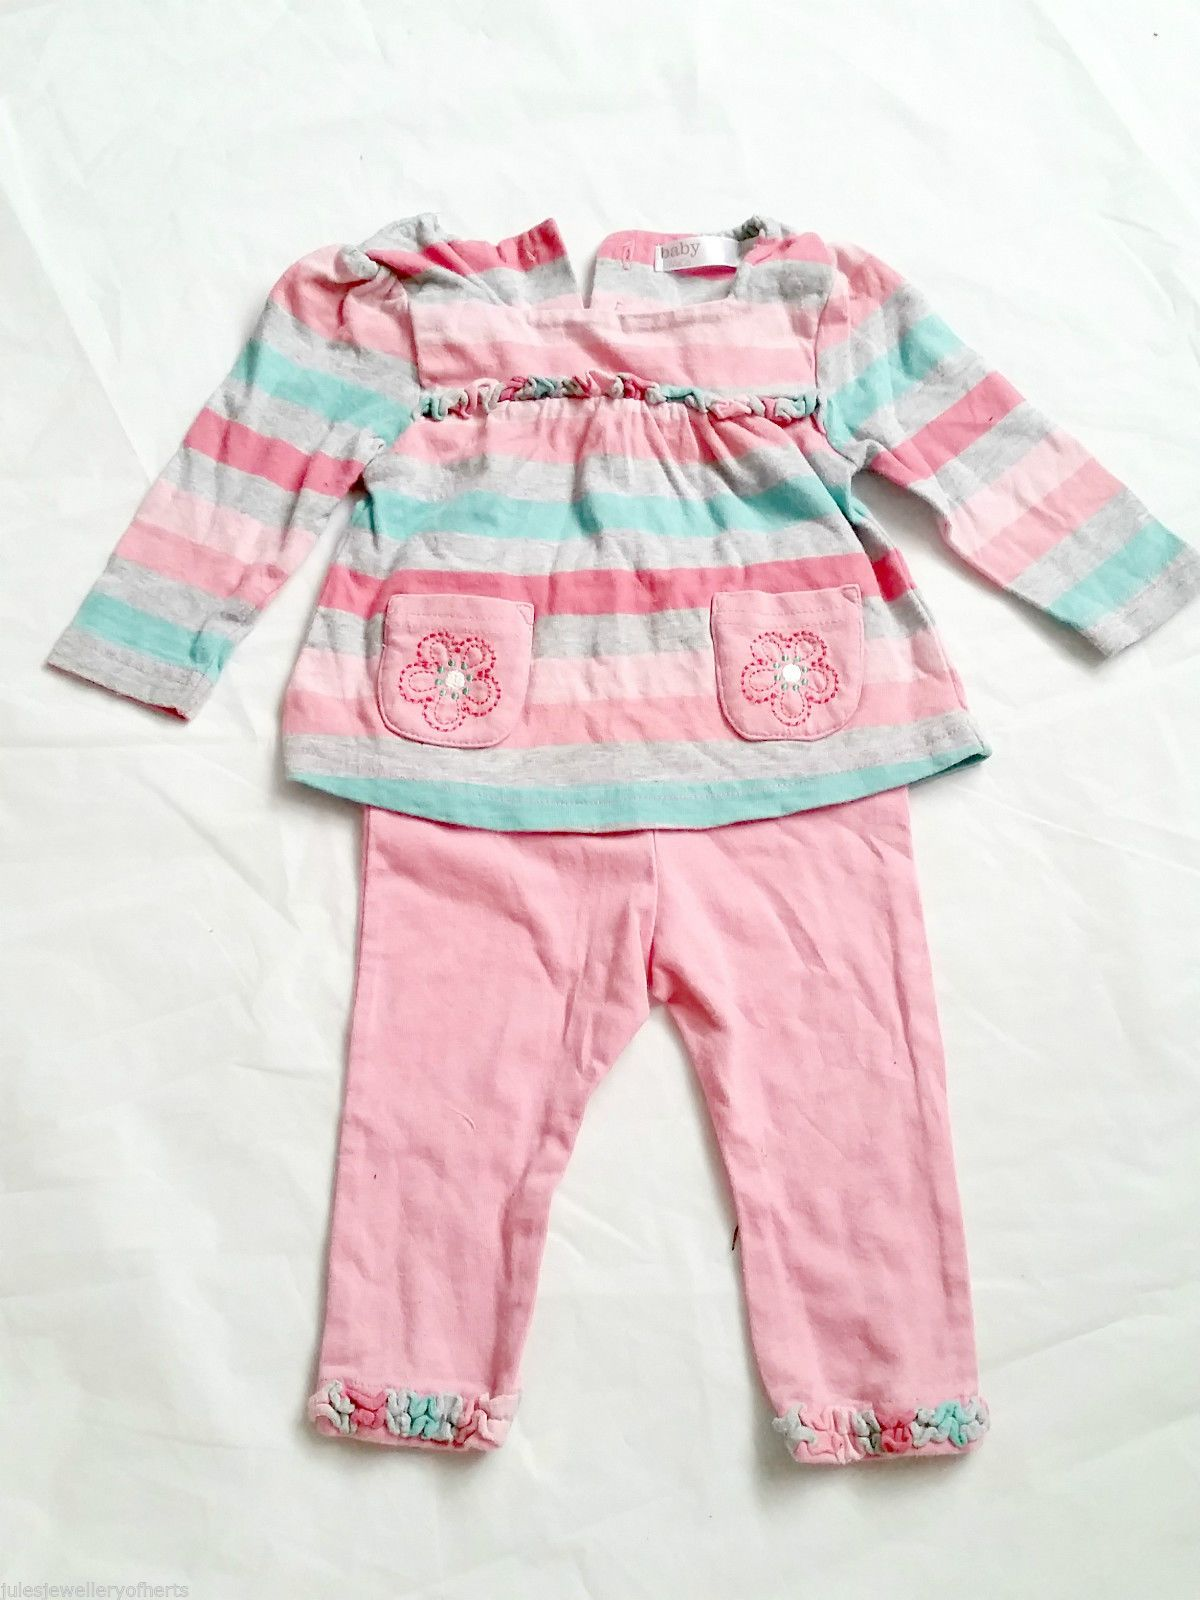 BABY CLOTHES baby girl 3 6 months 2 piece set M&Co top and trousers